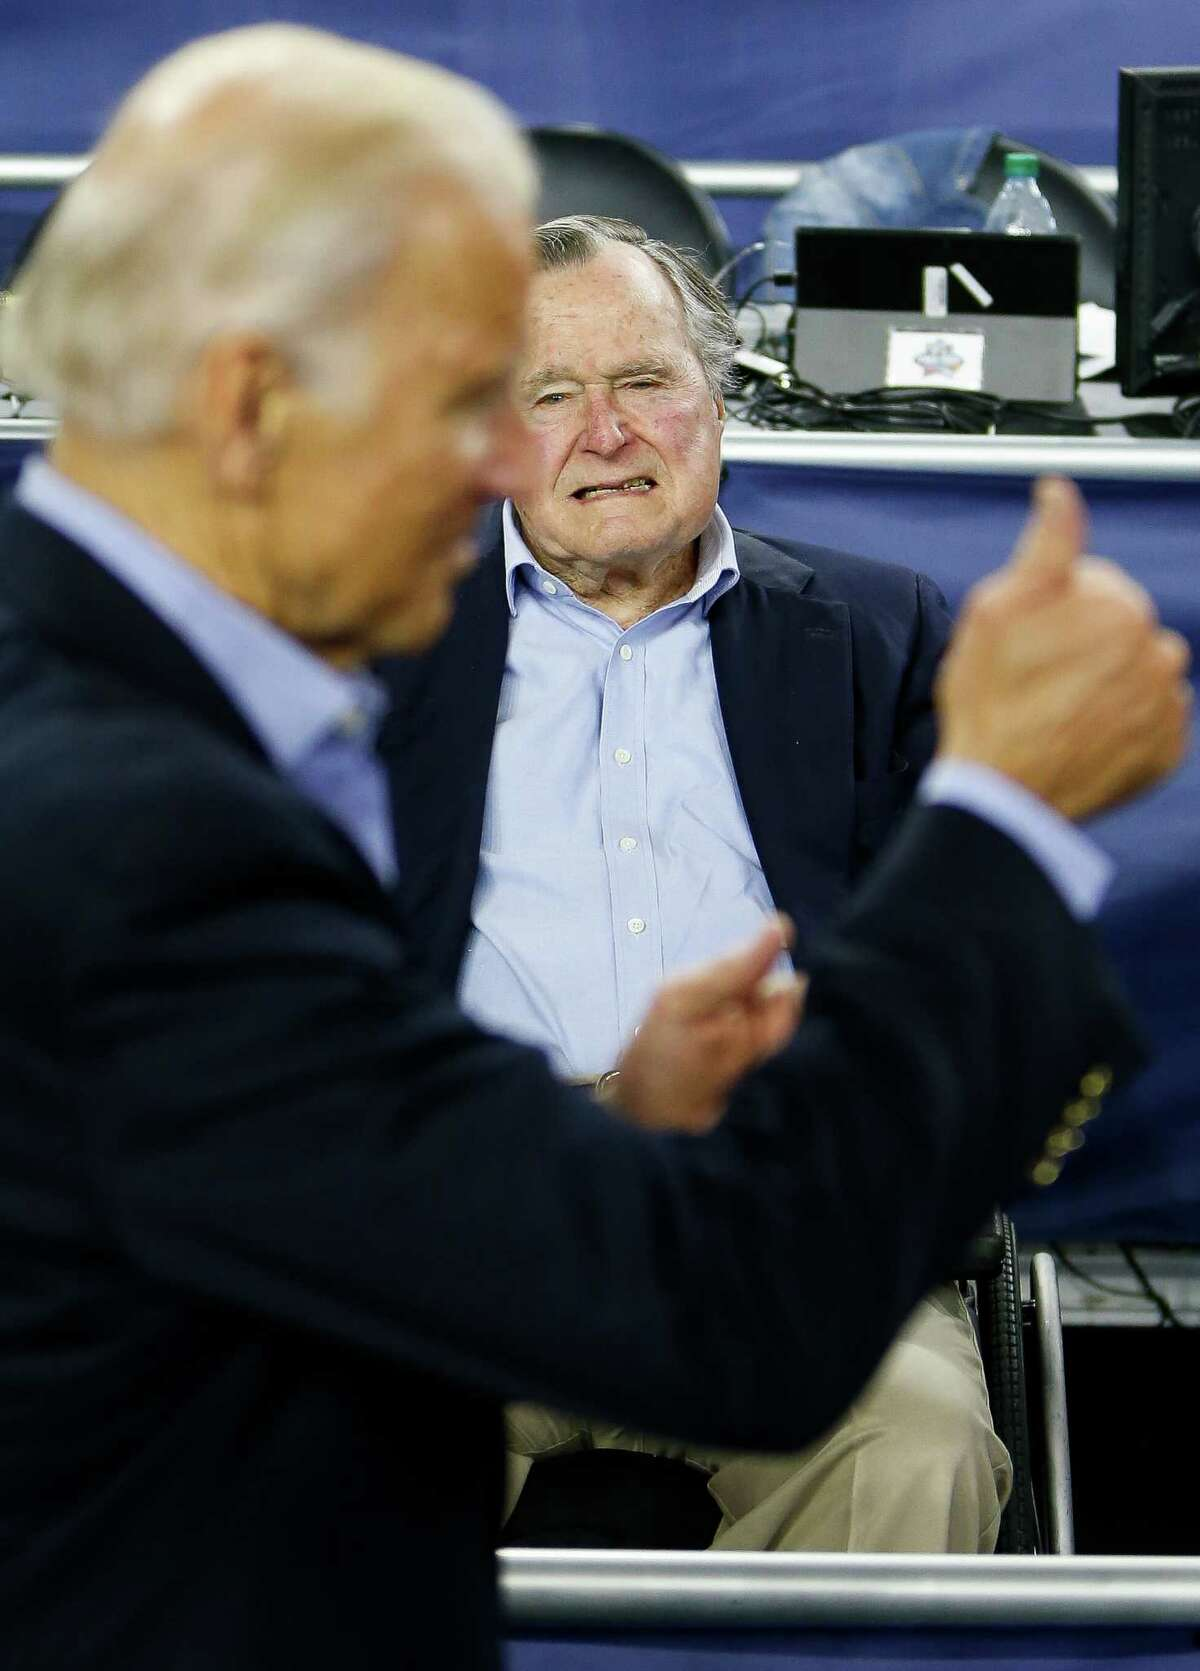 Vice President Joe Biden gives the thumbs up as former president George H.W. Bush watches the NCAA Final Four semifinals at NRG Stadium, Saturday, April 2, 2016, in Houston.